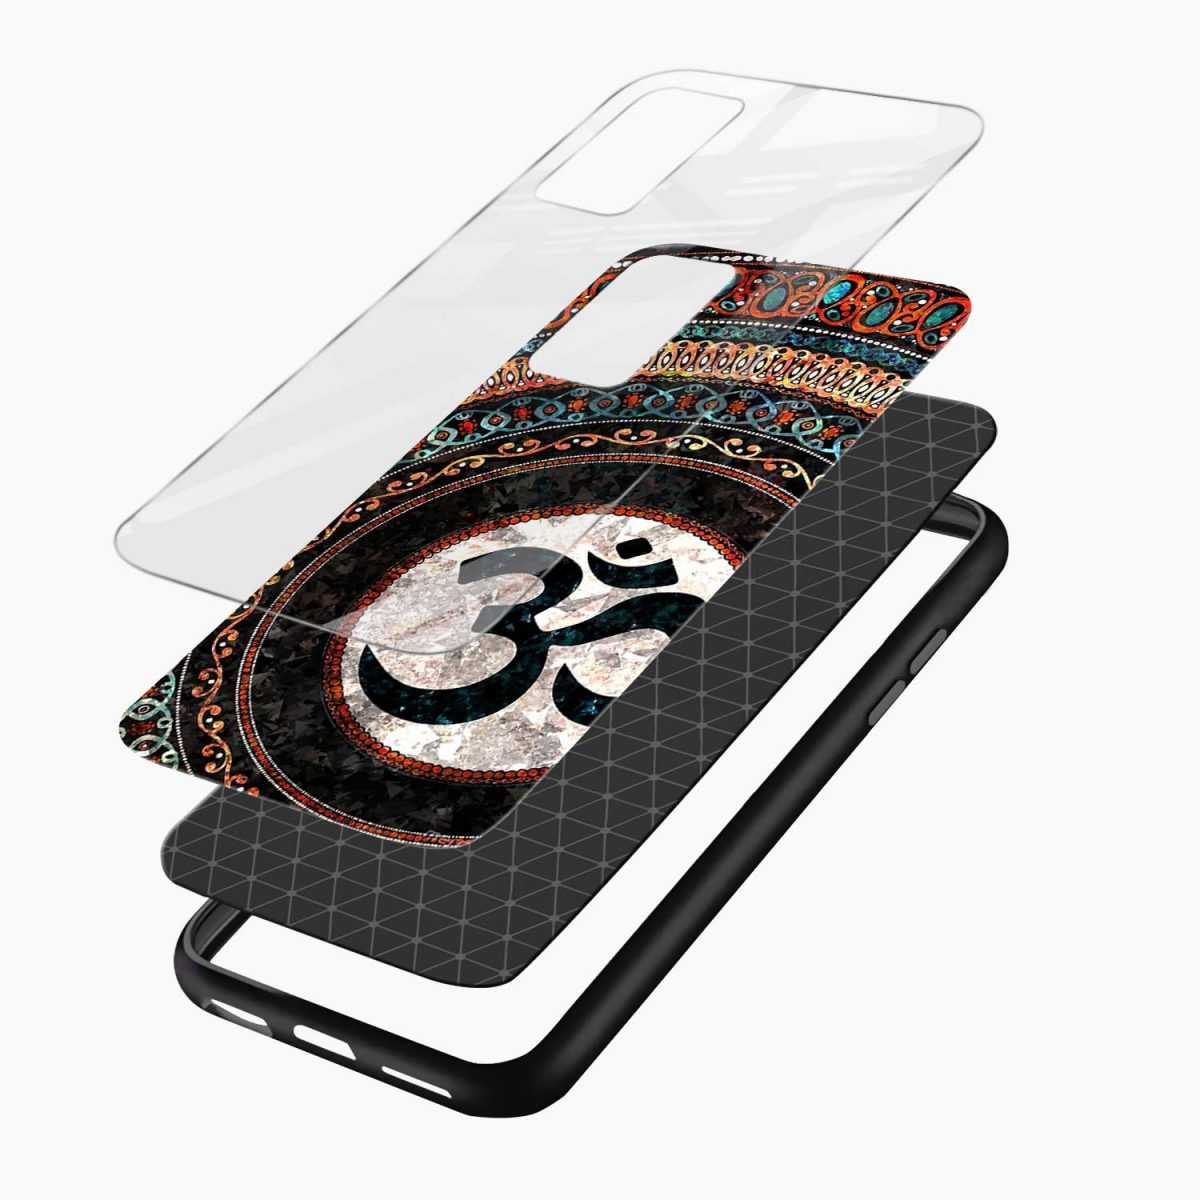 om glass xiaomi mi 10t pro back cover layers view